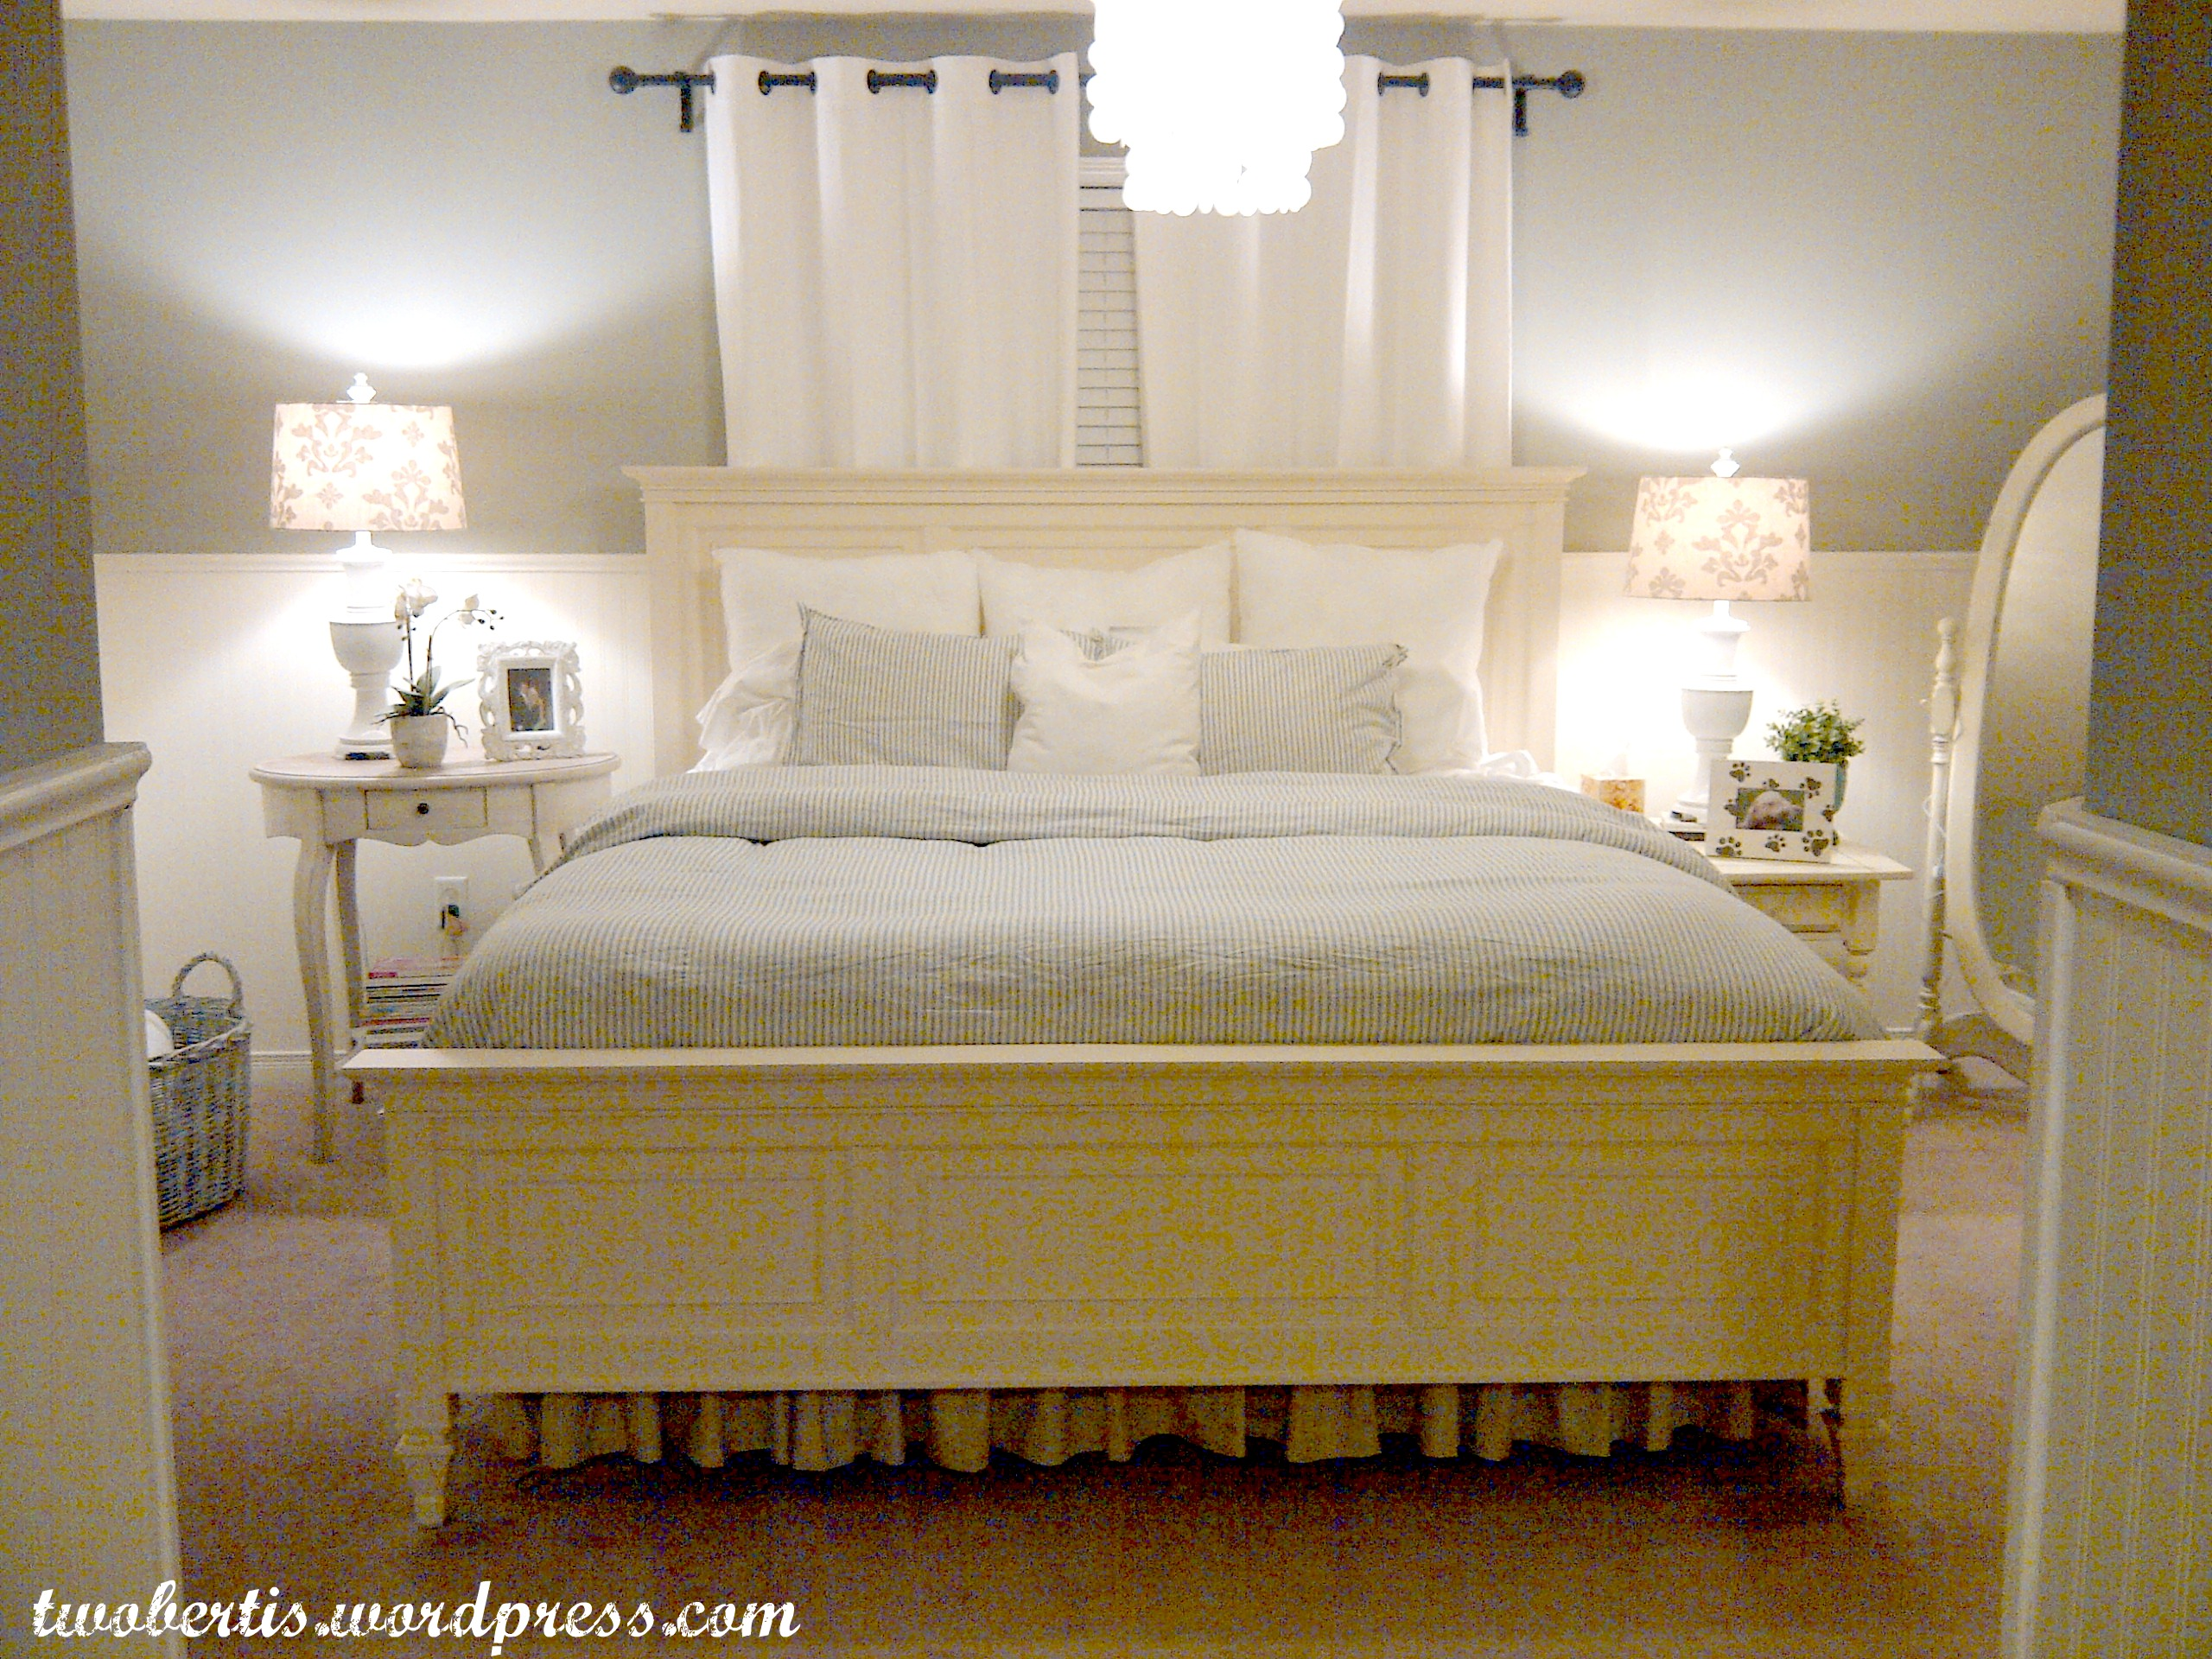 Master Bedroom Makeover Remodelaholic Pottery Barn Inspired Master Bedroom Makeover